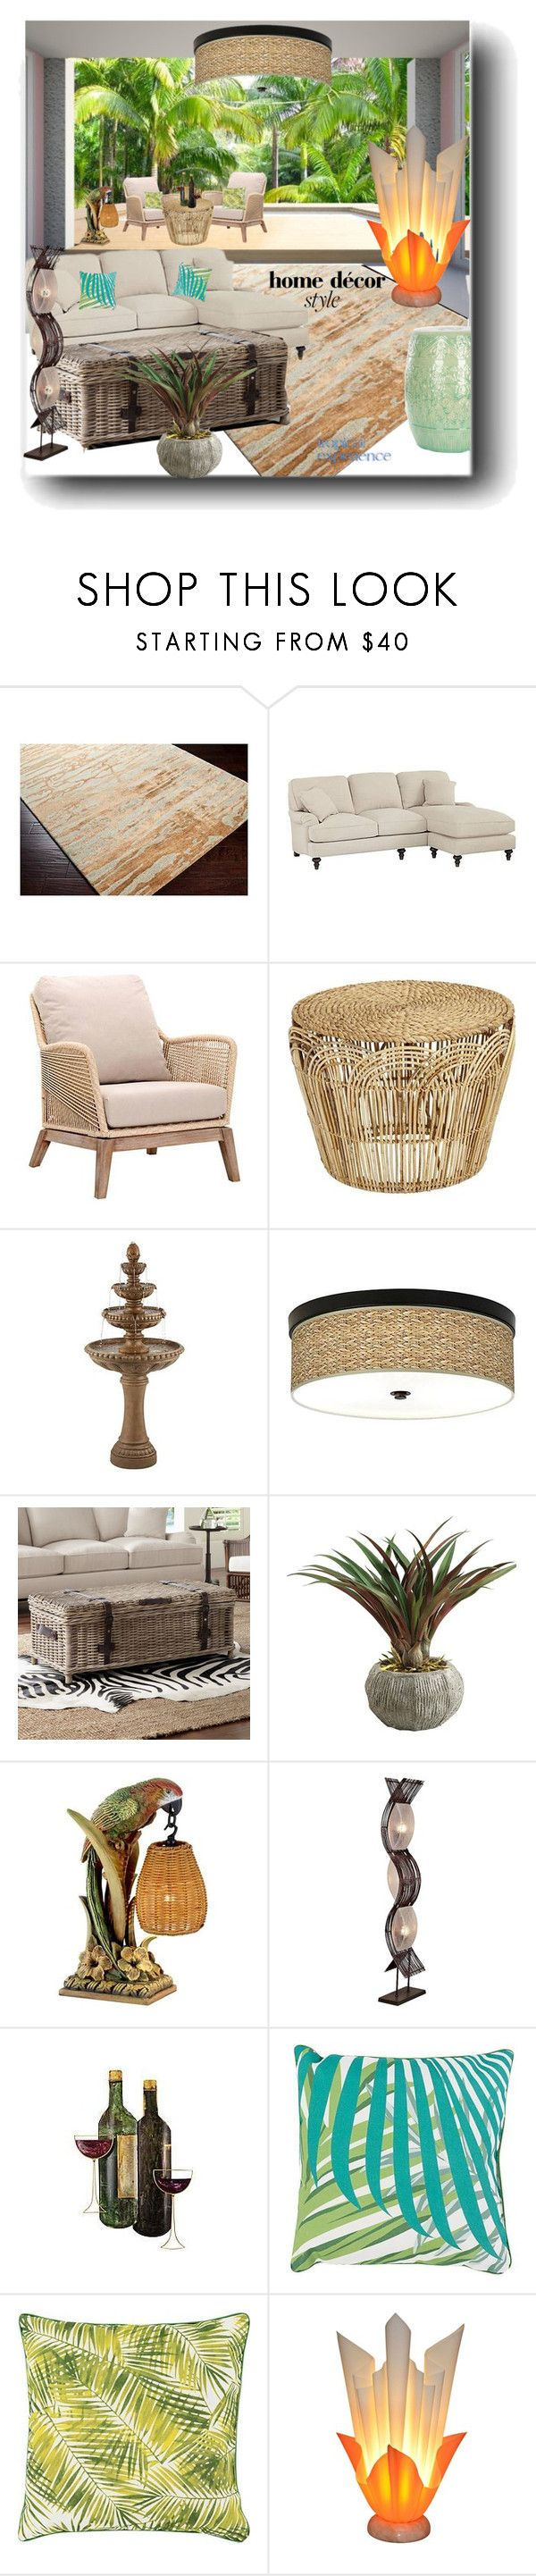 """""""Tropical Style"""" by snezanamilunovic ❤ liked on Polyvore featuring interior, interiors, interior design, home, home decor, interior decorating, Surya, Sloane, Giclee Gallery and Kathy Ireland"""